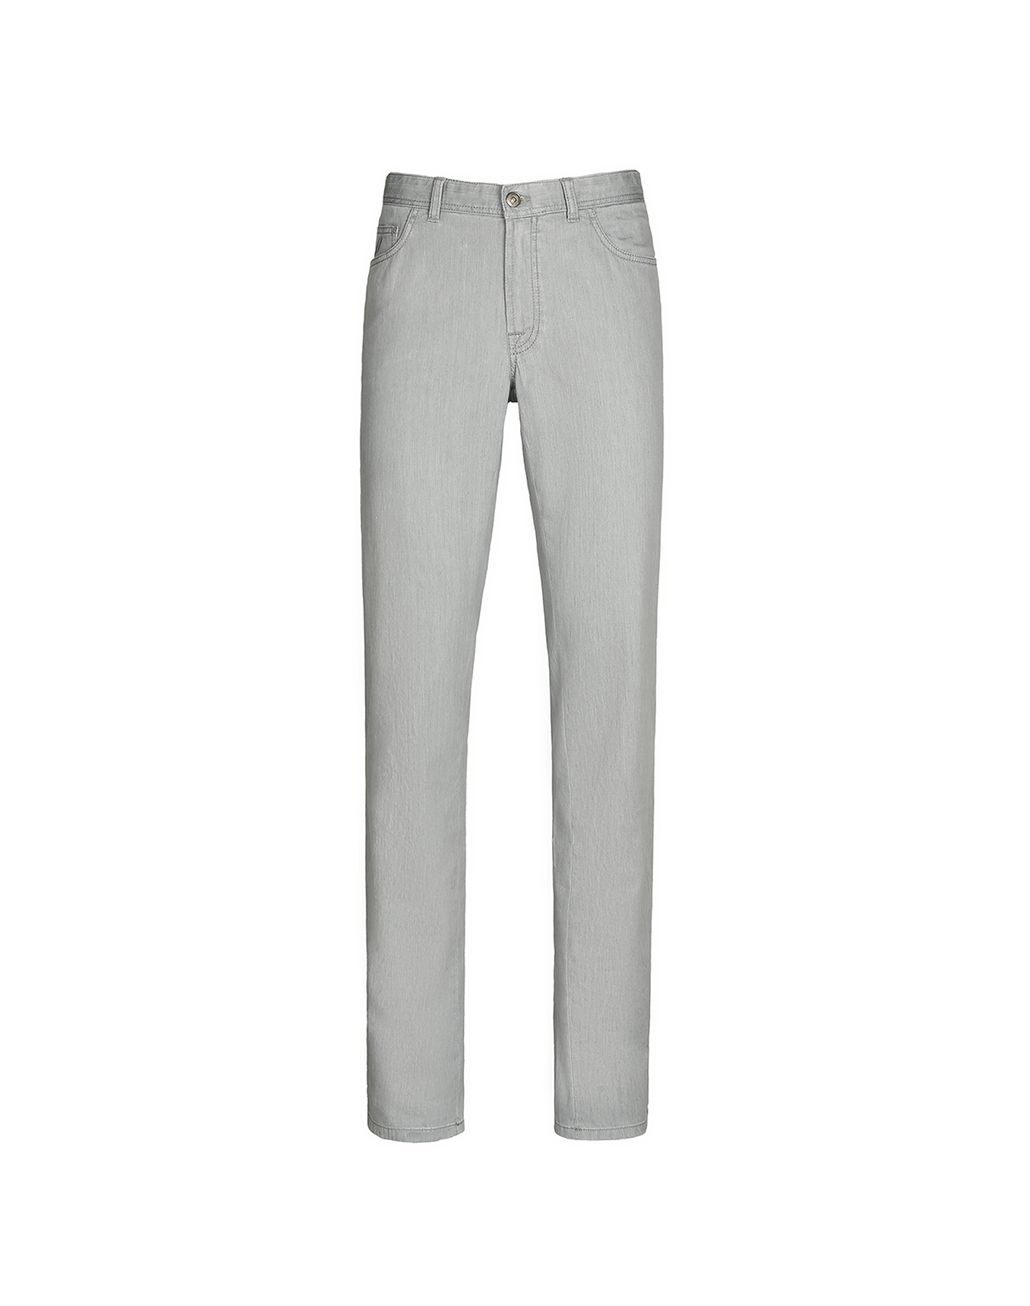 BRIONI Light Gray Comfort Fit Chamonix Jeans  Denim Man f